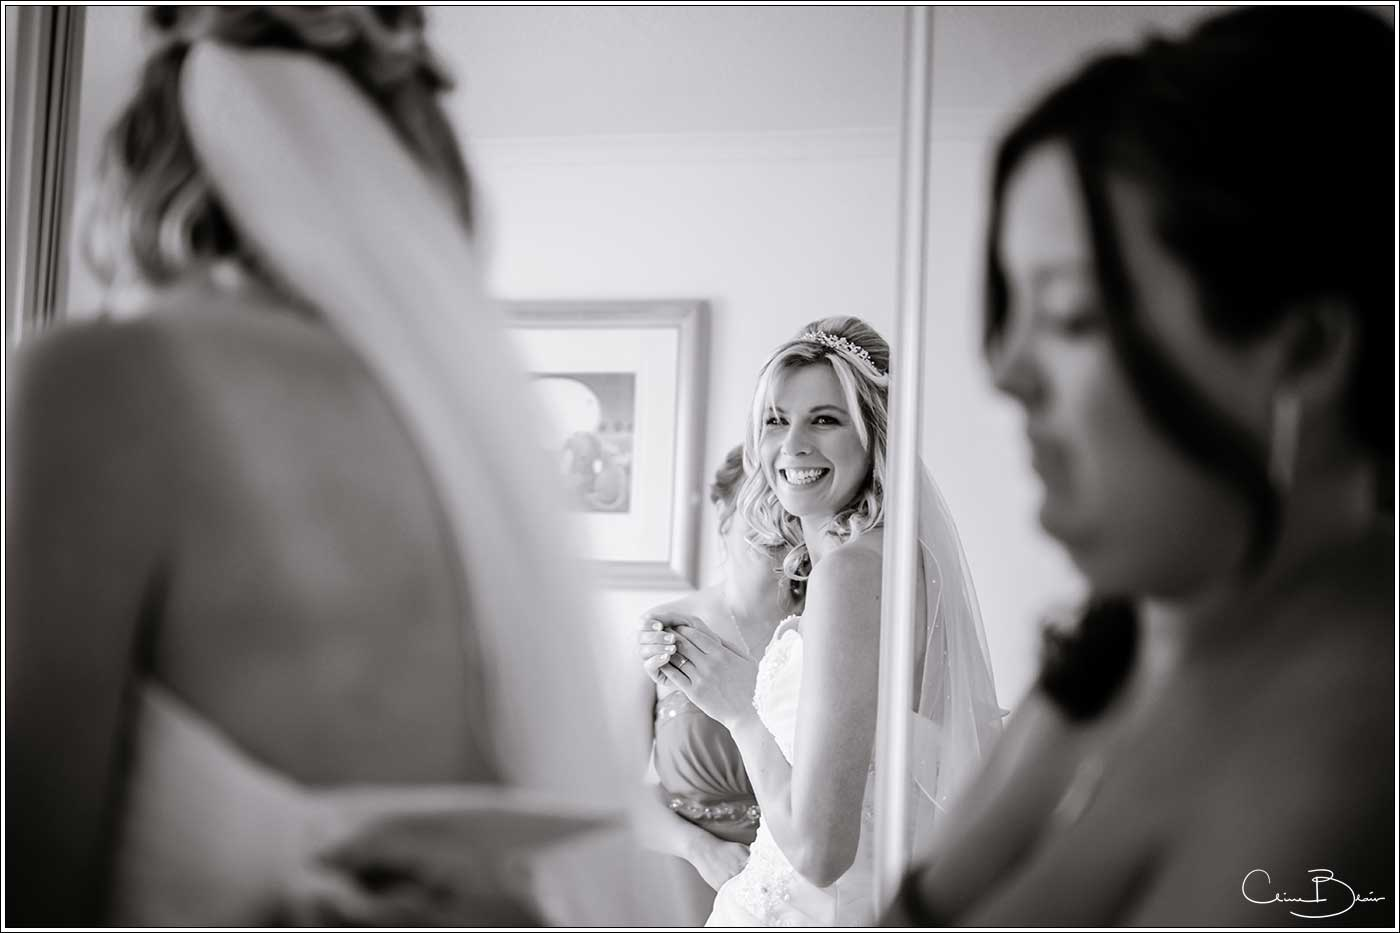 Bride smiling at her reflection while getting ready-by Hampton manor wedding photographer Clive Blair Photography